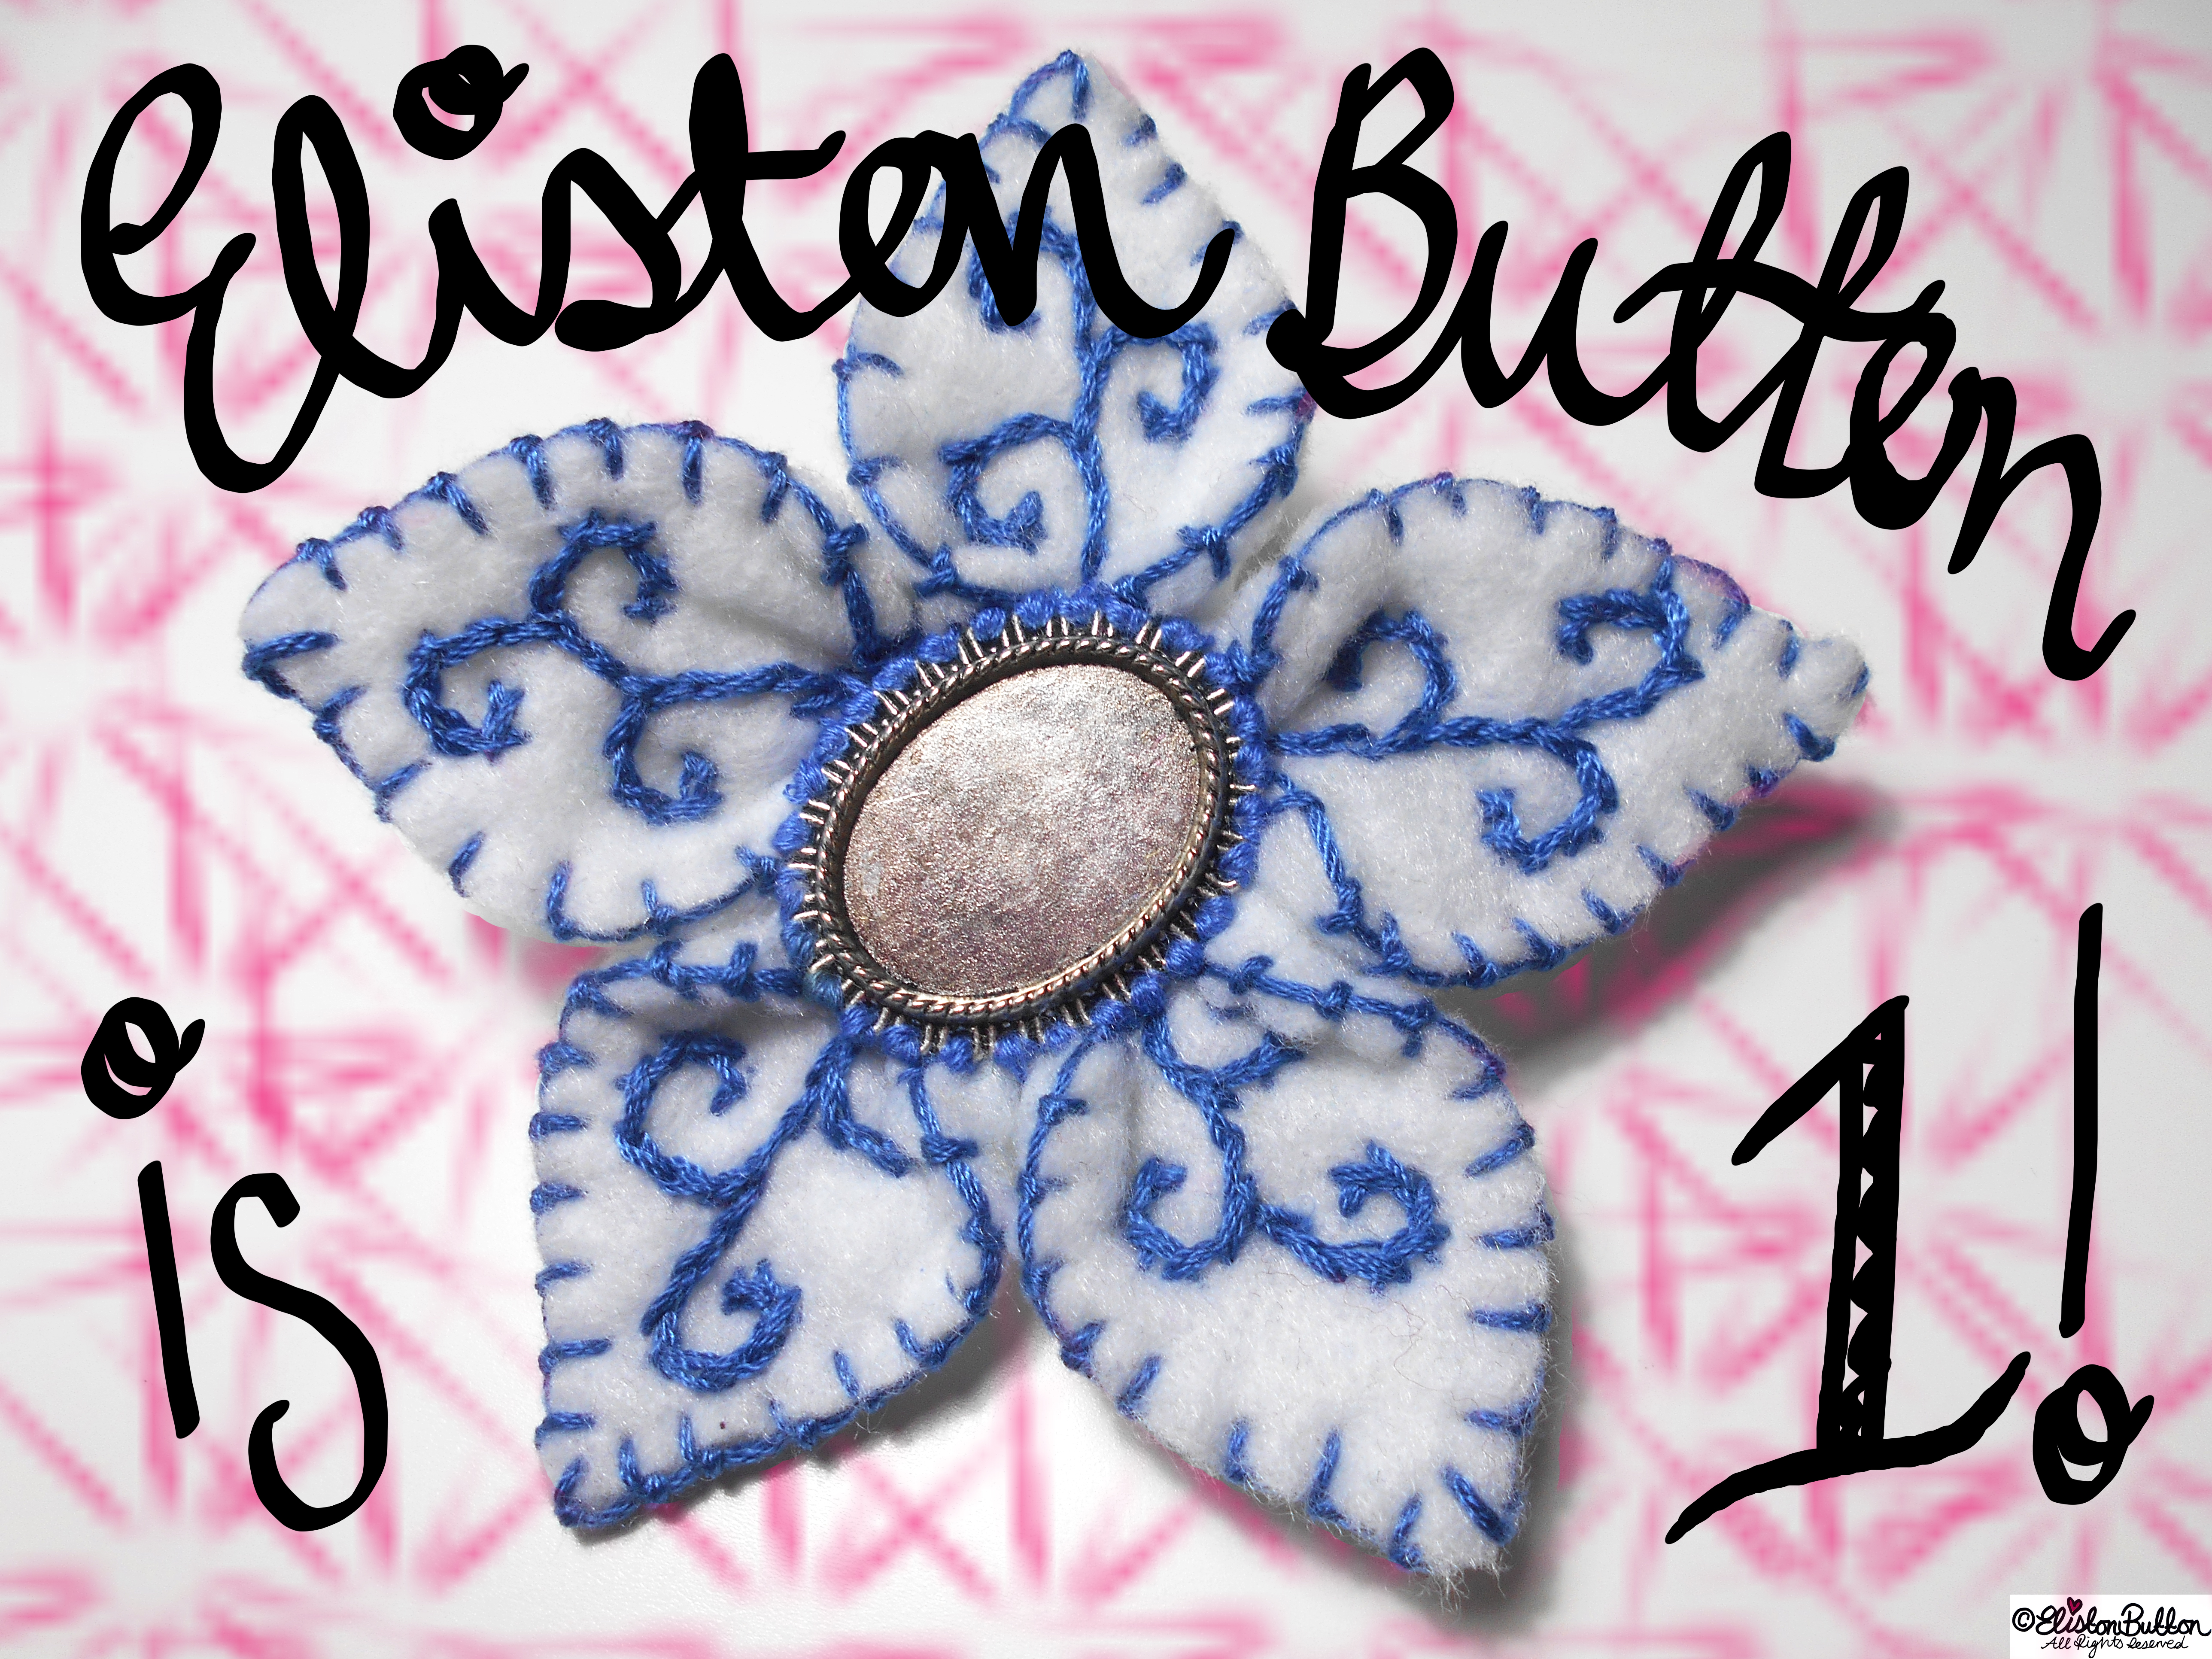 Eliston Button is 1! - Eliston Button is One Year Old! (And a Giveaway!!) at www.elistonbutton.com - Eliston Button - That Crafty Kid – Art, Design, Craft & Adventure.